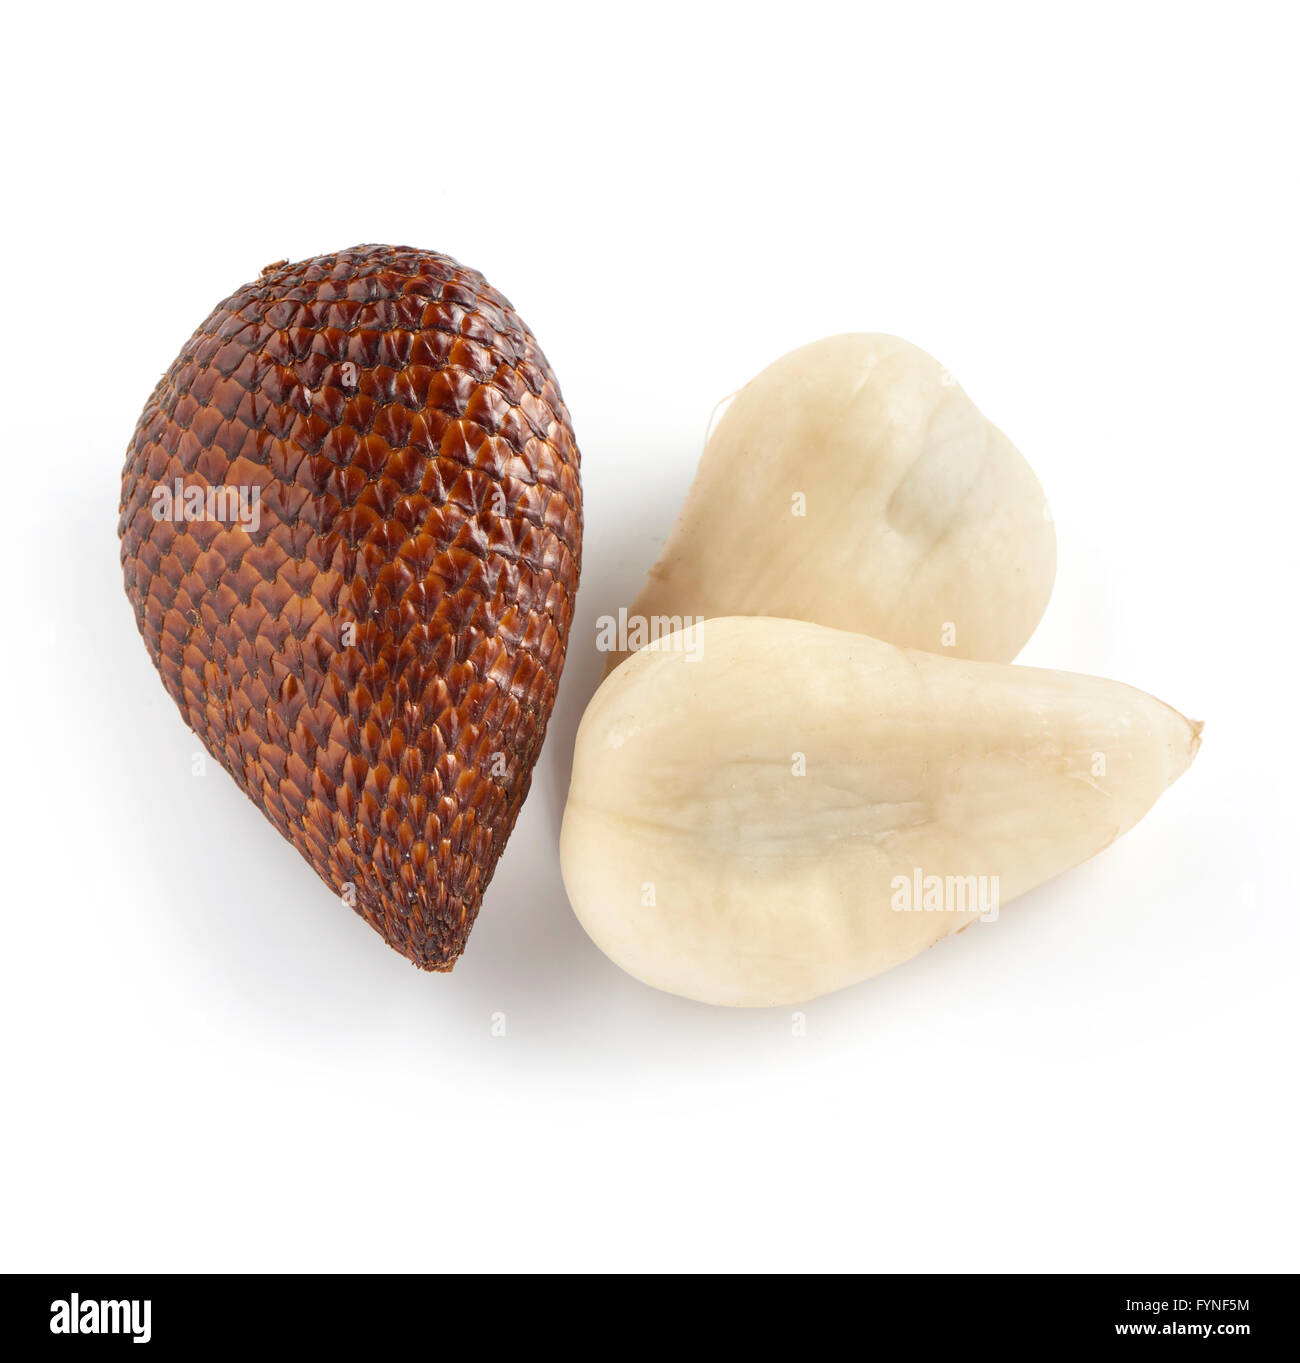 Close Up Still Life of One Unpeeled Exotic Salak Palm Fruit with Brown Scaly Skin, and Two Halves of Flesh from - Stock Image